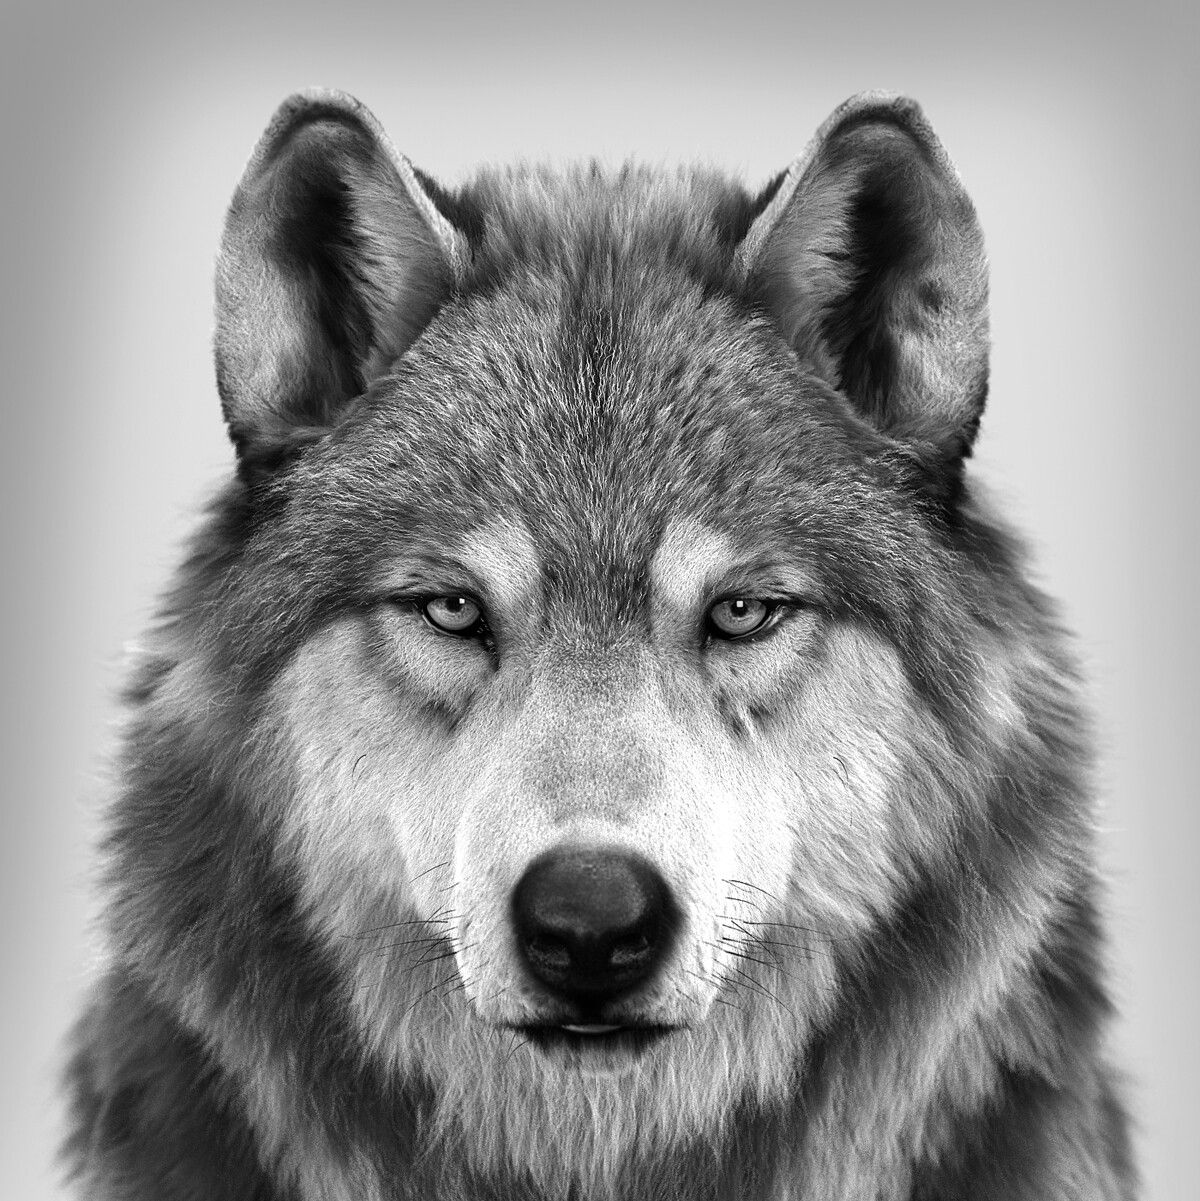 Wolf Portrait (different angle), Massimo Righi